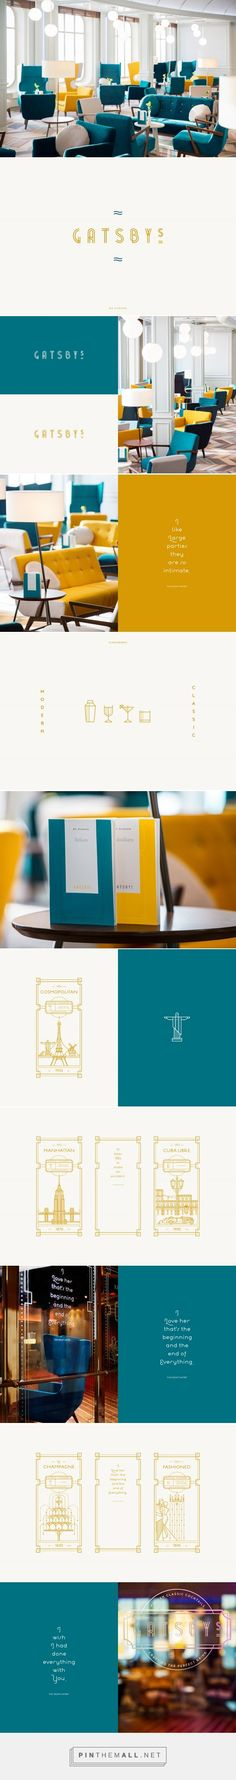 GATSBY°S Restaurant Branding by Studio Chapeaux    Fivestar Branding Agency – Design and Branding Agency & Curated Inspiration Gallery